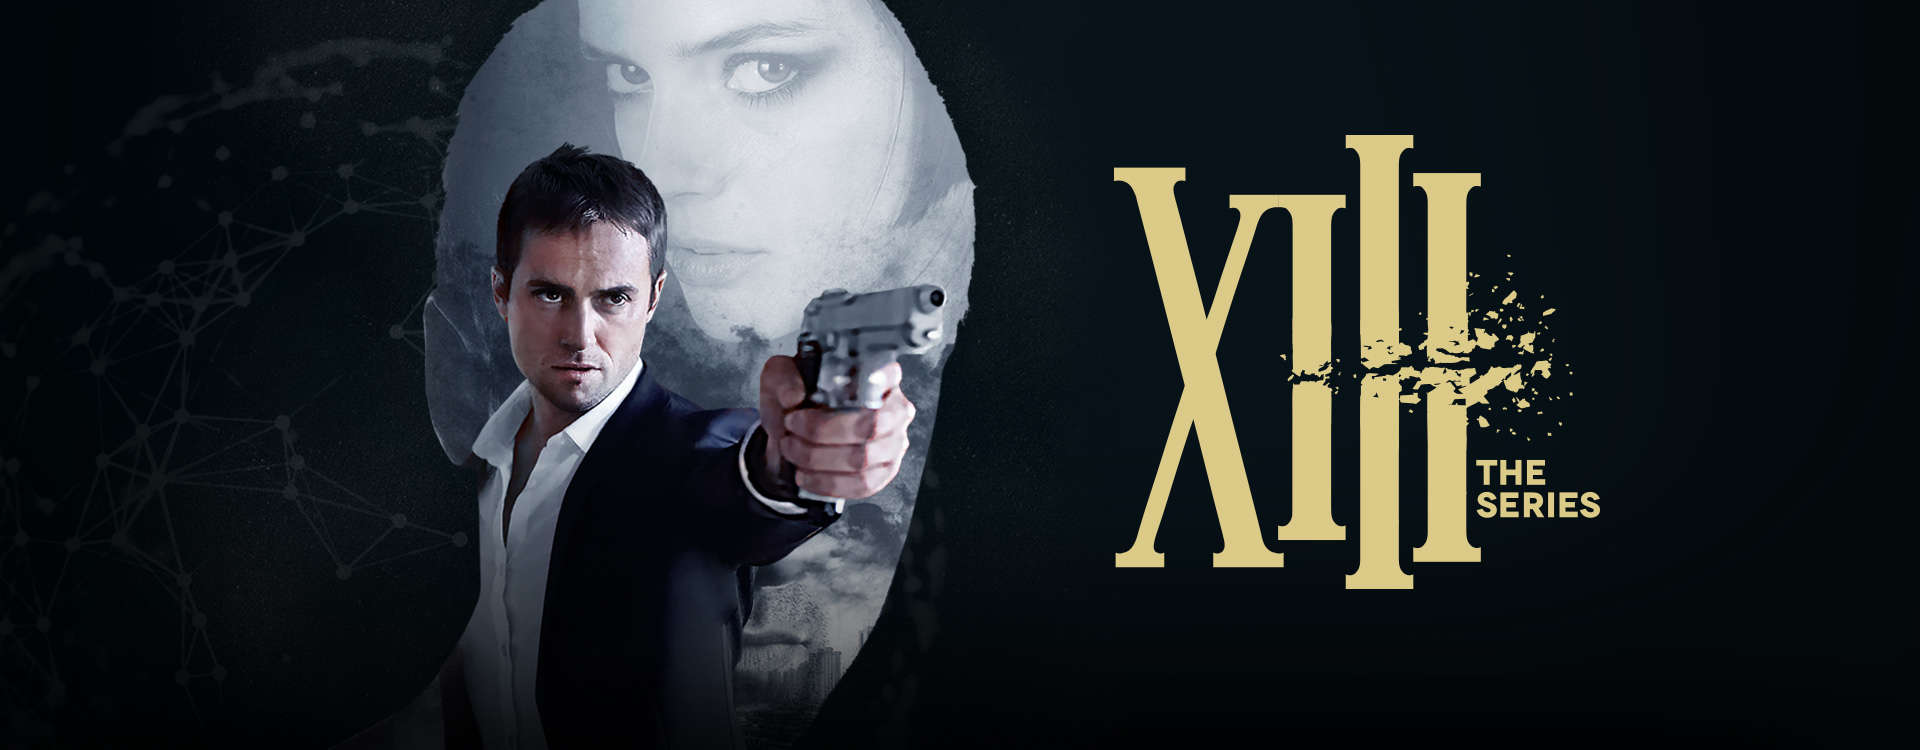 XIII - The Series